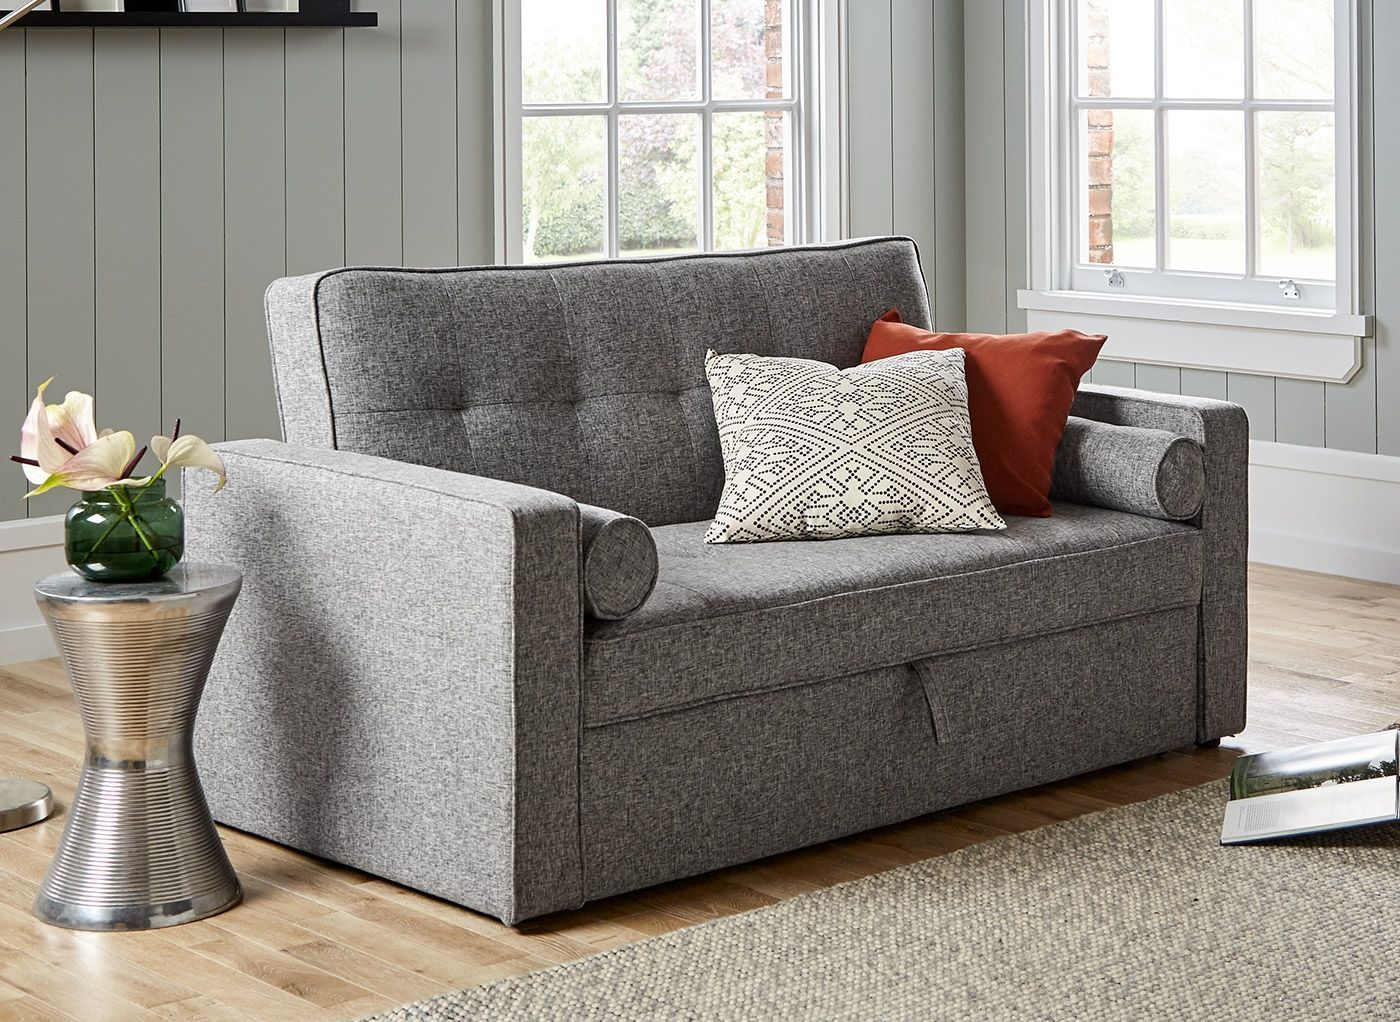 new sofa bed price image-Lovely sofa Bed Price Construction